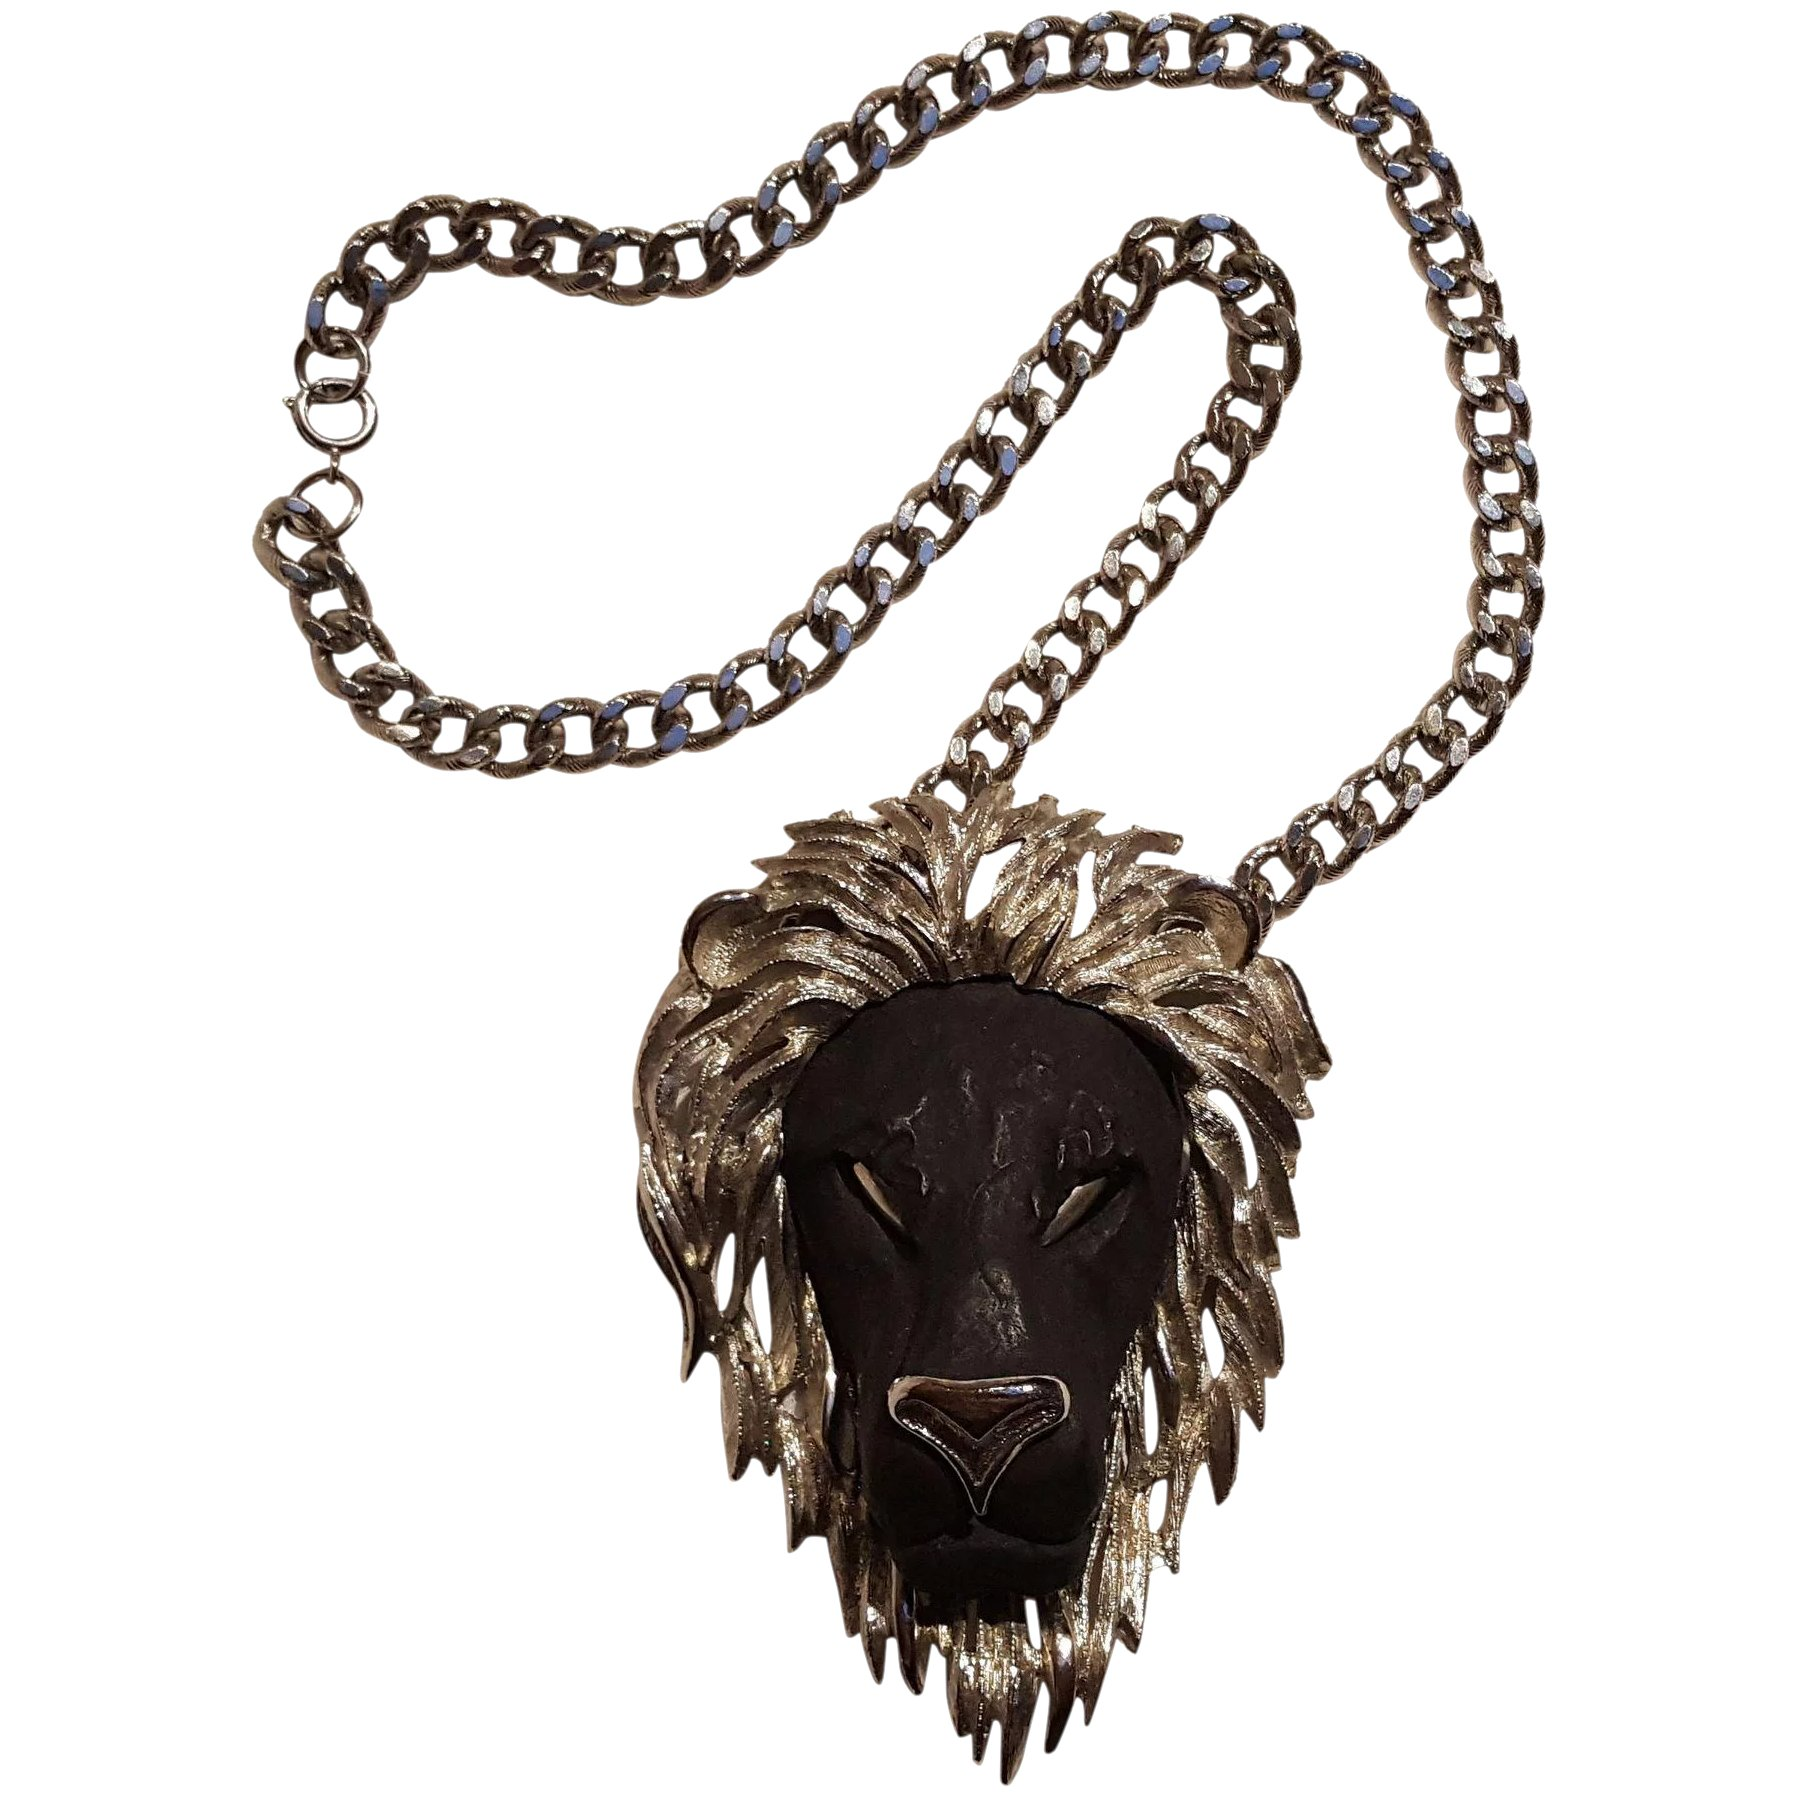 power african a and be collection lion page strength this wilderness jewelry solid pendant beneath gold alone can or product ruby in stands shompole featuring sun symbolizing the